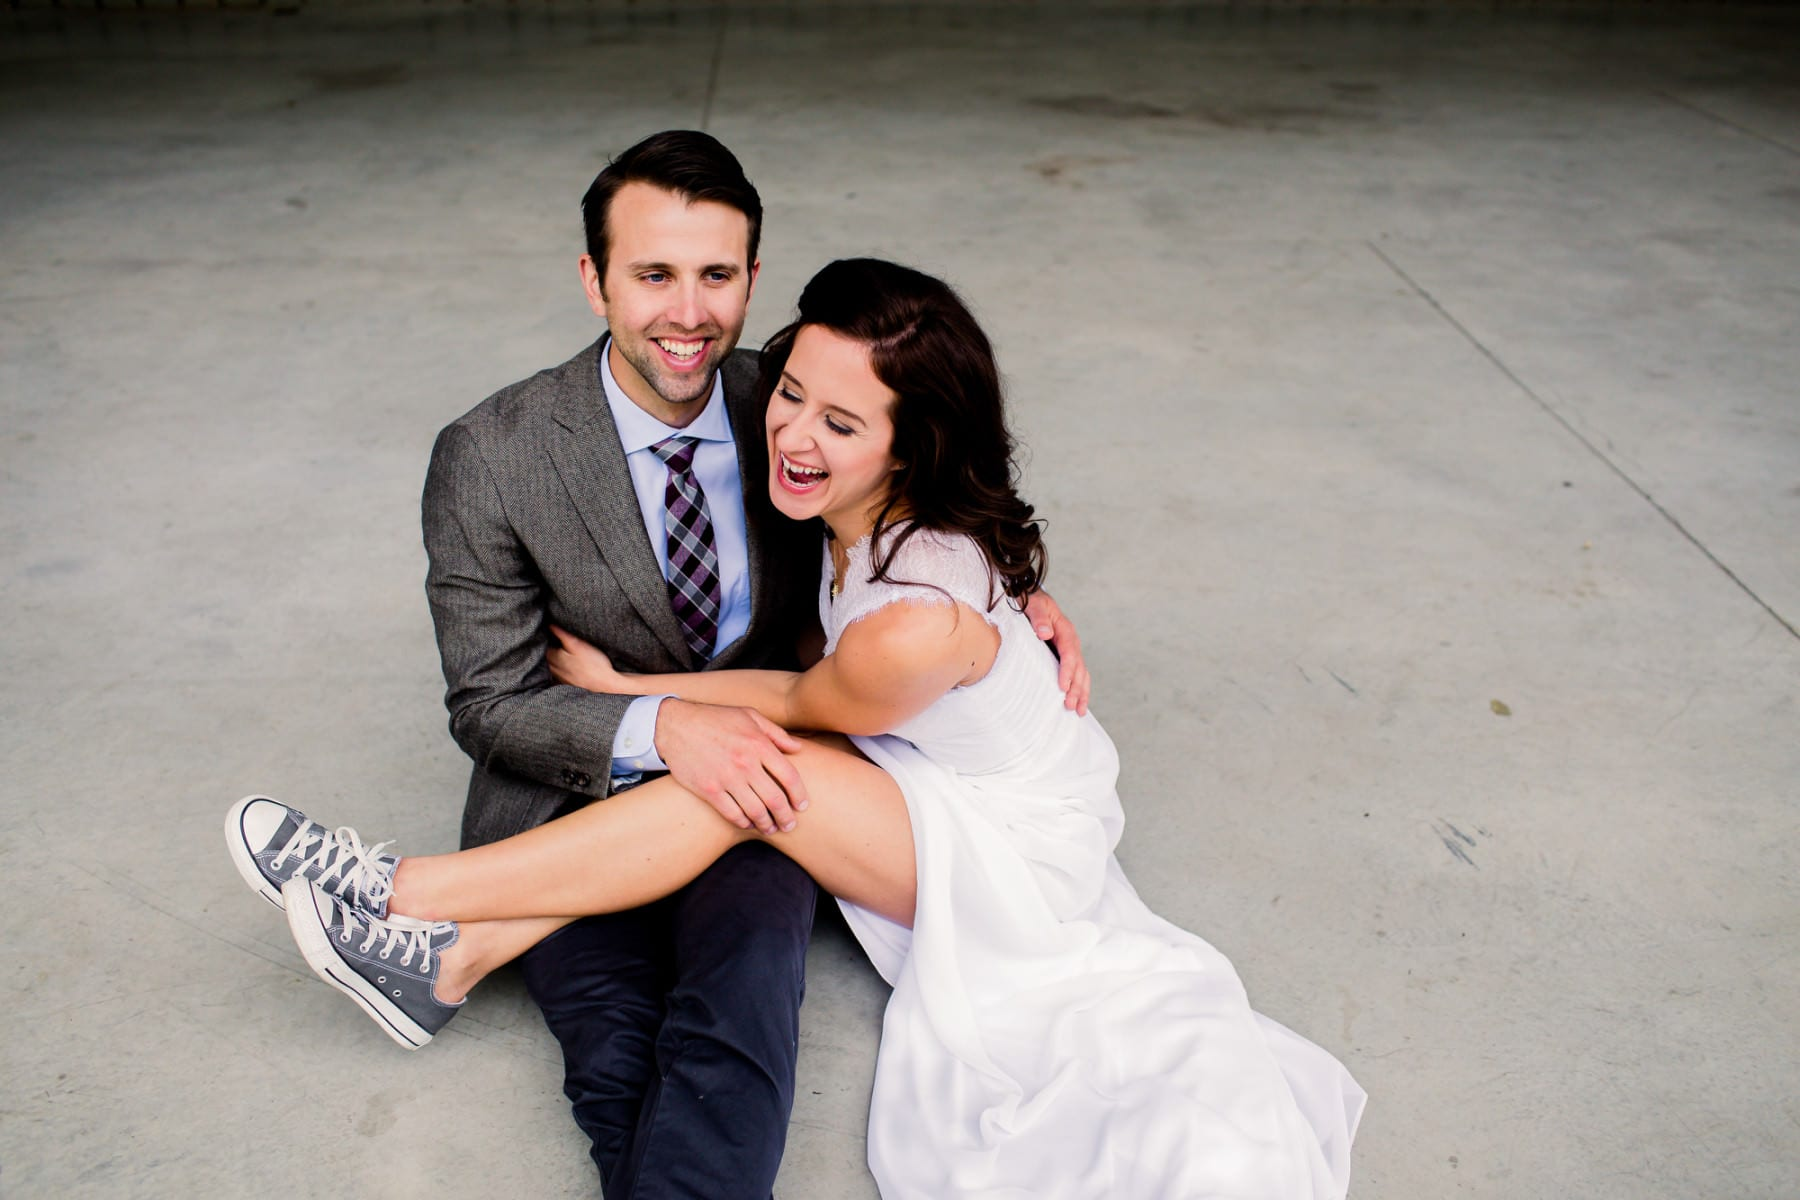 Mackenzie Miller Yoga wedding in Alberta, Canada (61)